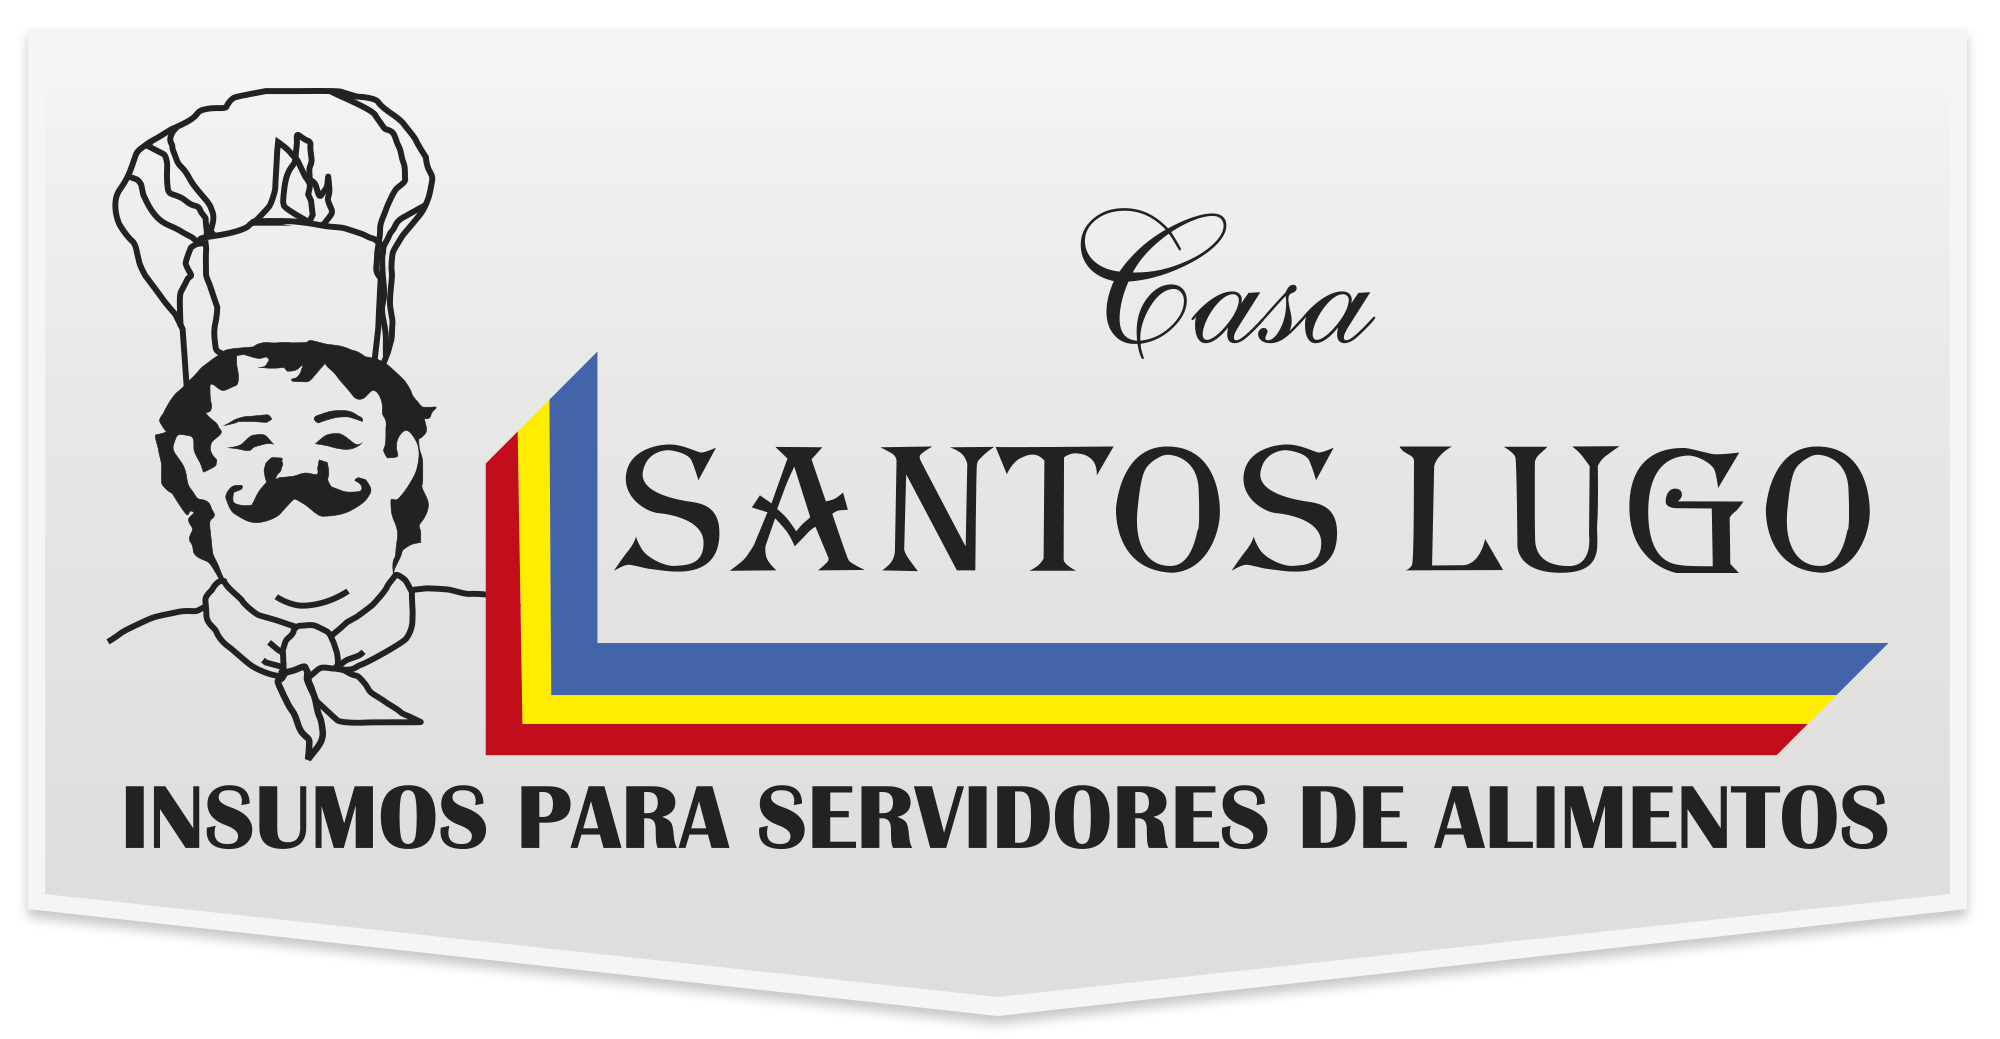 Registro de usuario